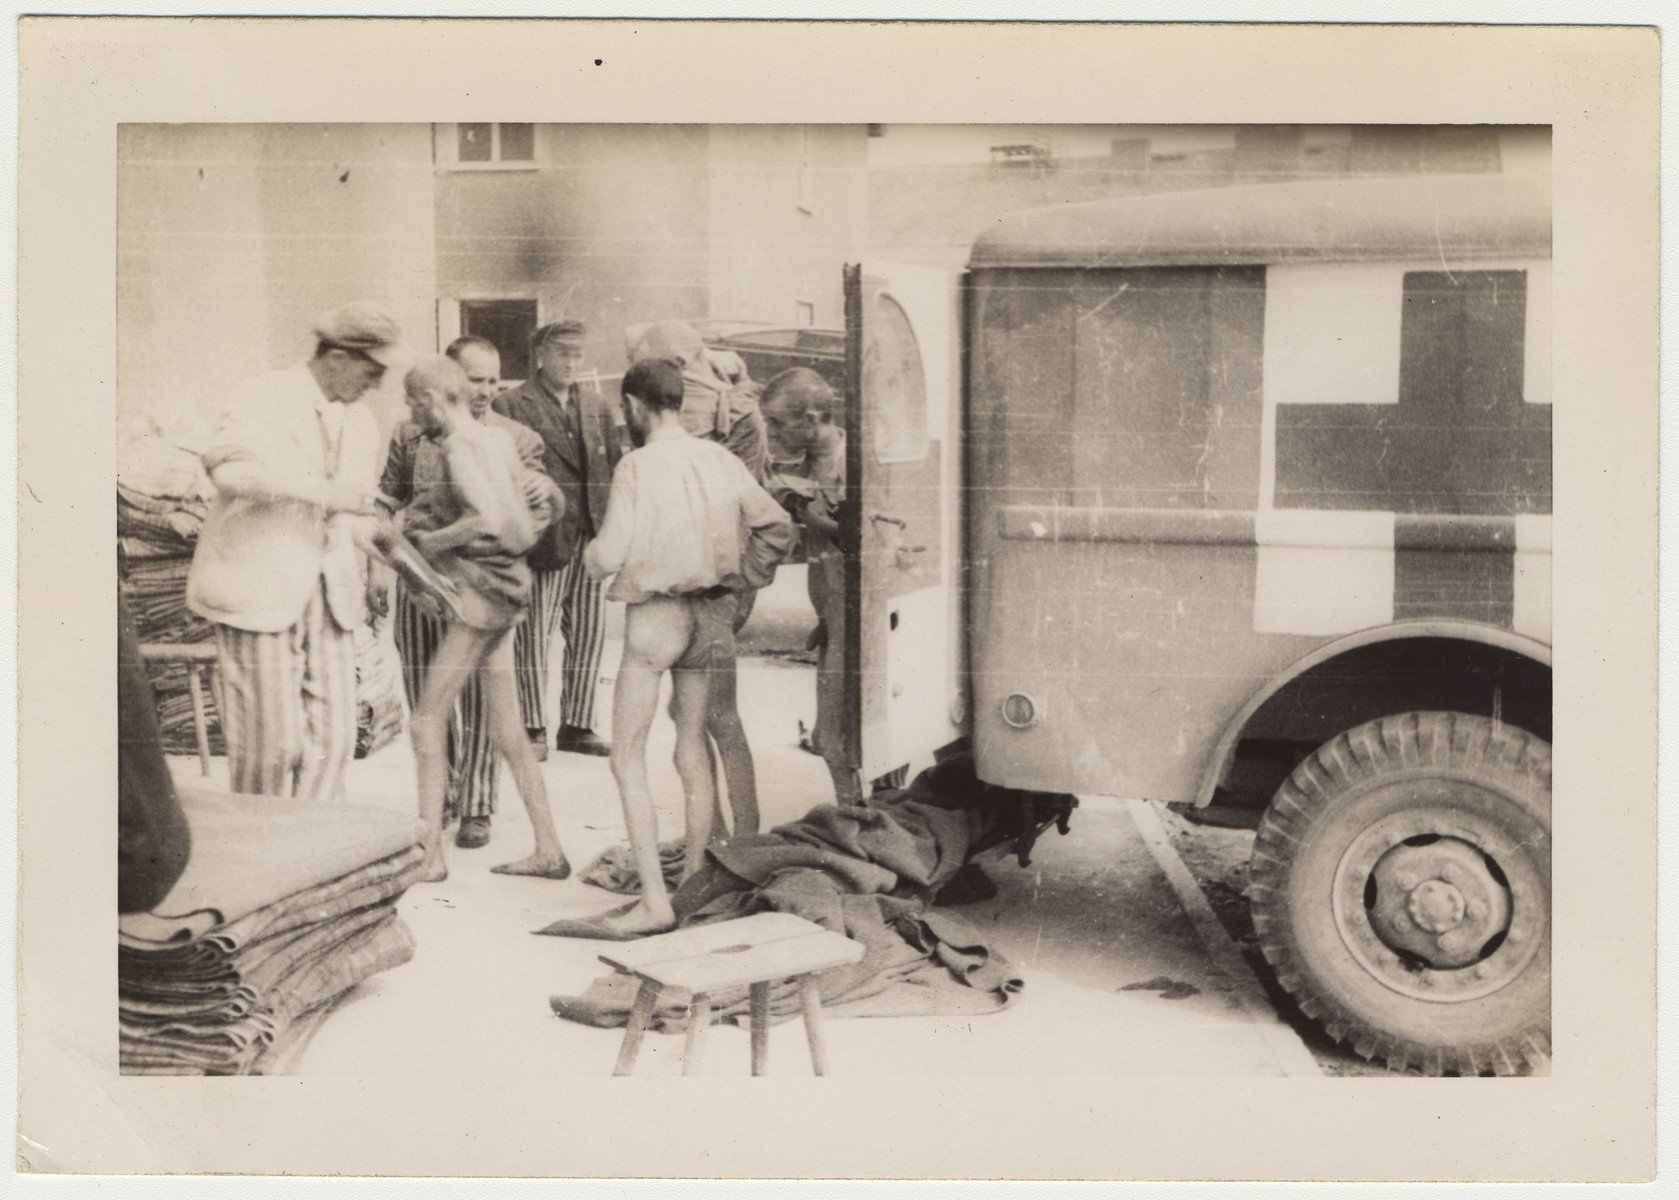 Concentration camp survivors stand next to an ambulance.